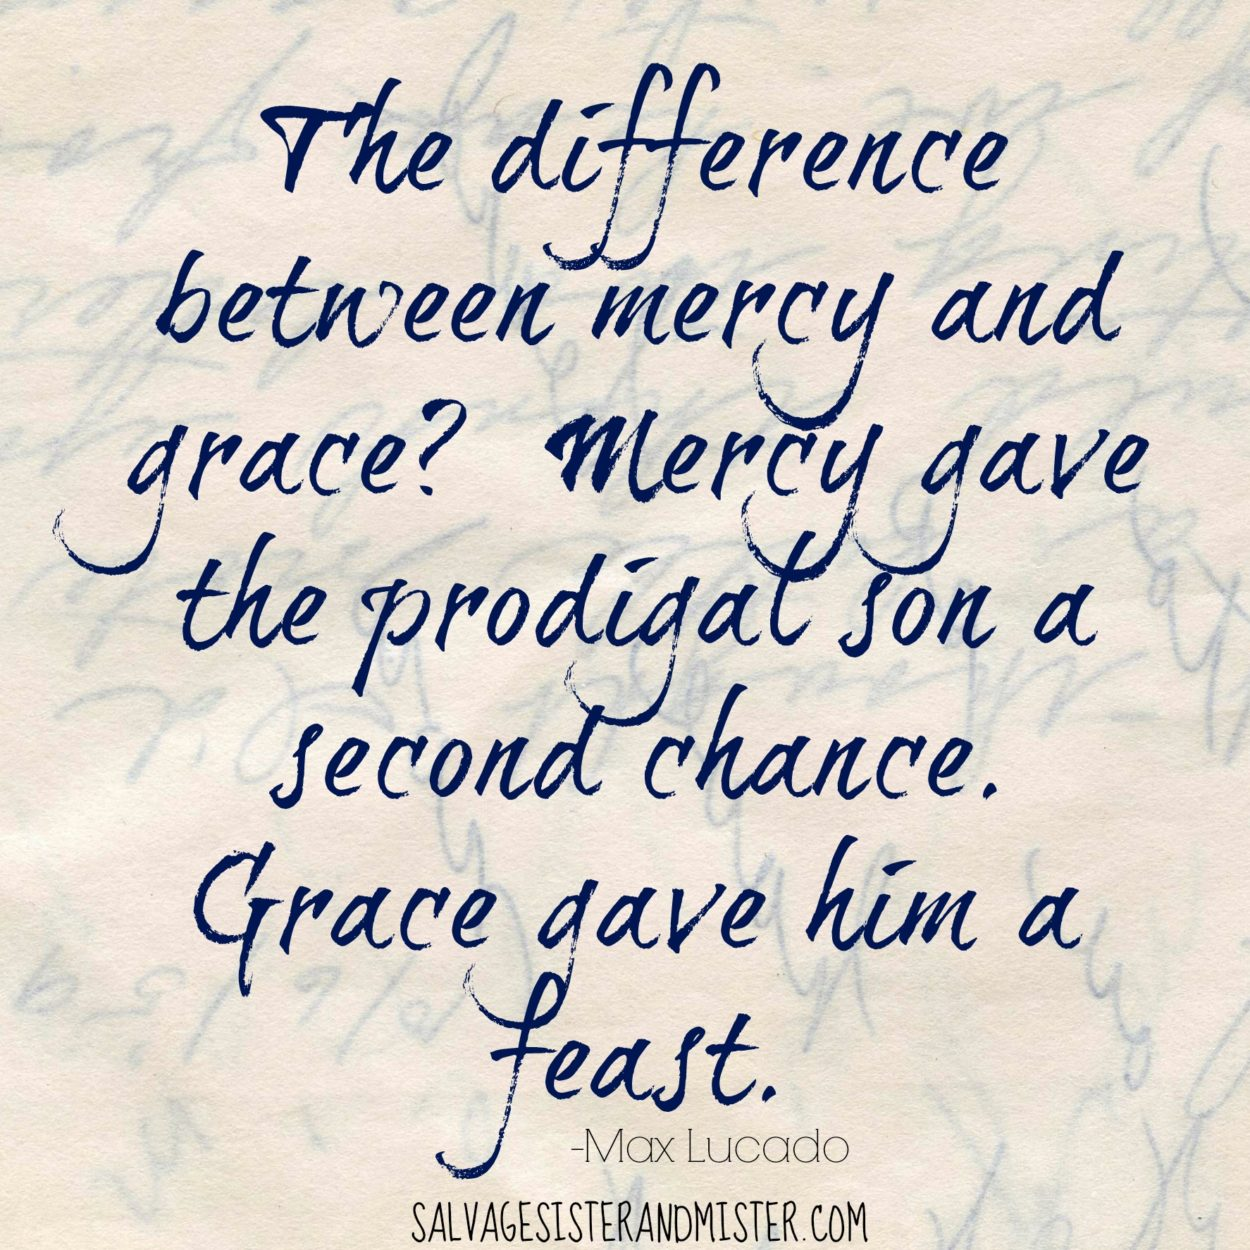 Mux Lucado quote the difference between grance and mercy in the prodigal son story. 3 biblical steps to take when a prodigal or lost child comes home. Parenting teens.